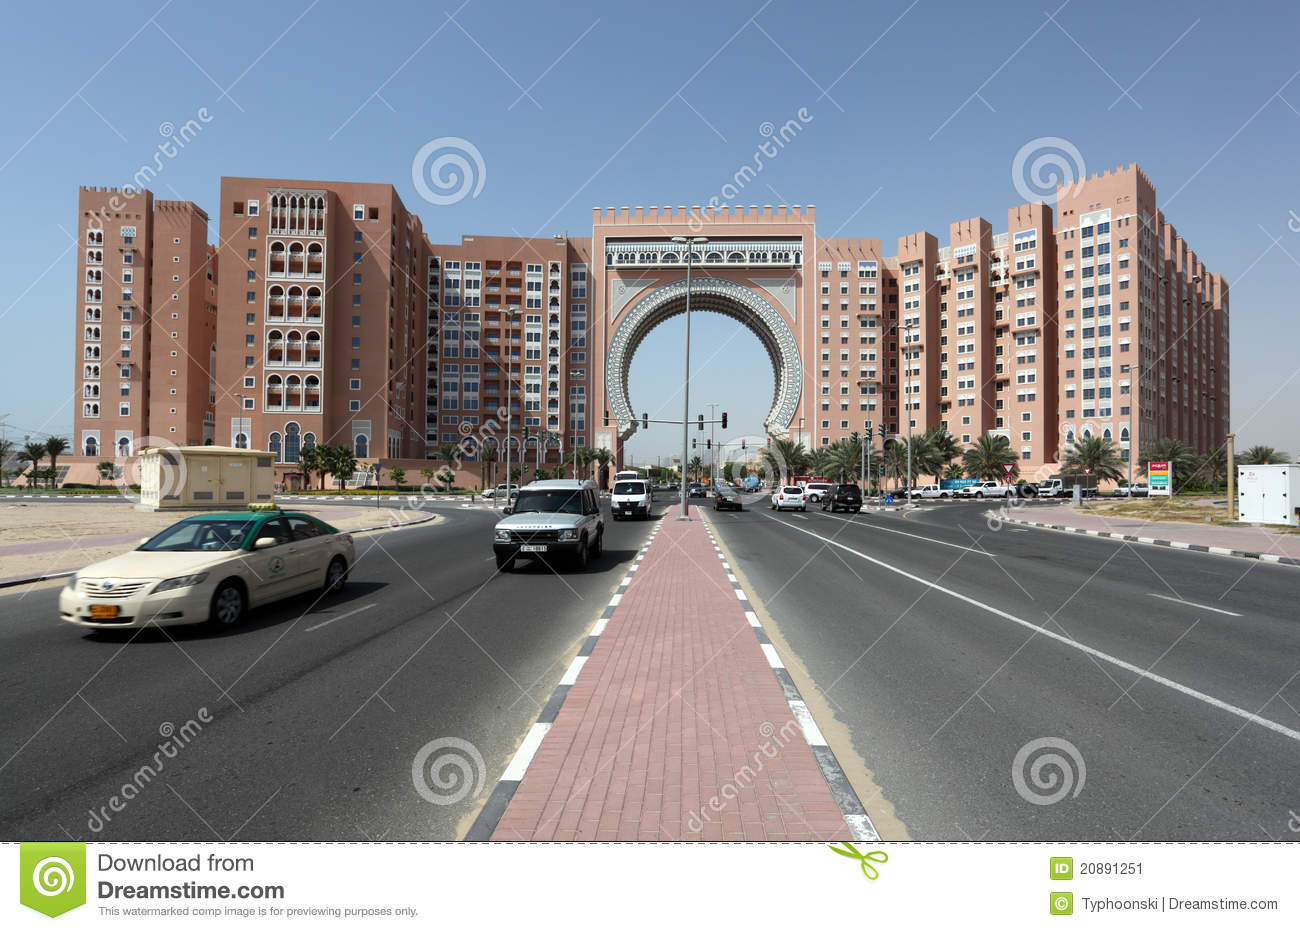 Dubai frame by Cacasilo - my life will forever rot away. must leave my  mark. in 2020 | Dubai, Life, Golden gate bridge